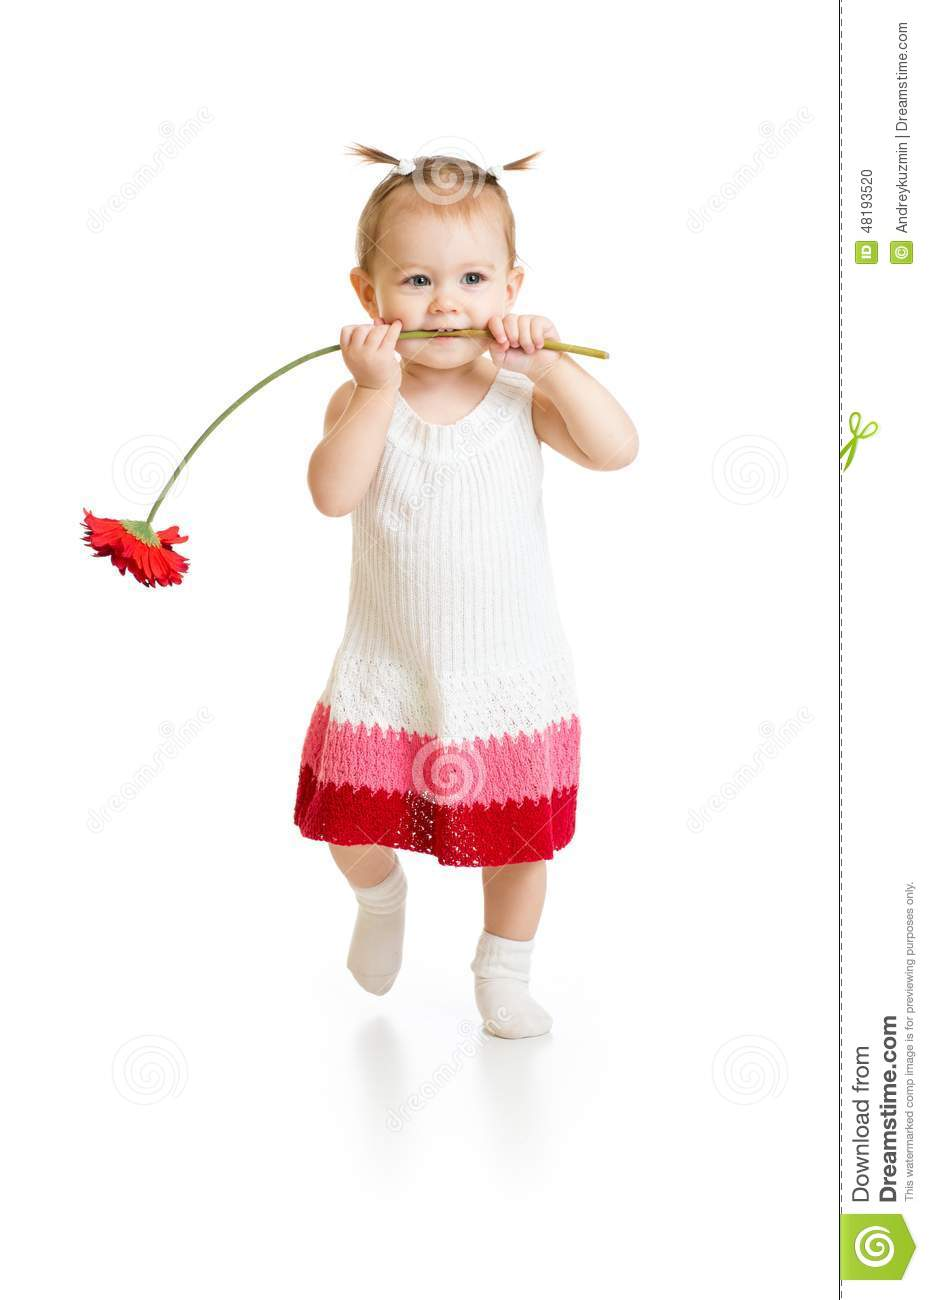 Adorable baby girl walking with flower in mouth